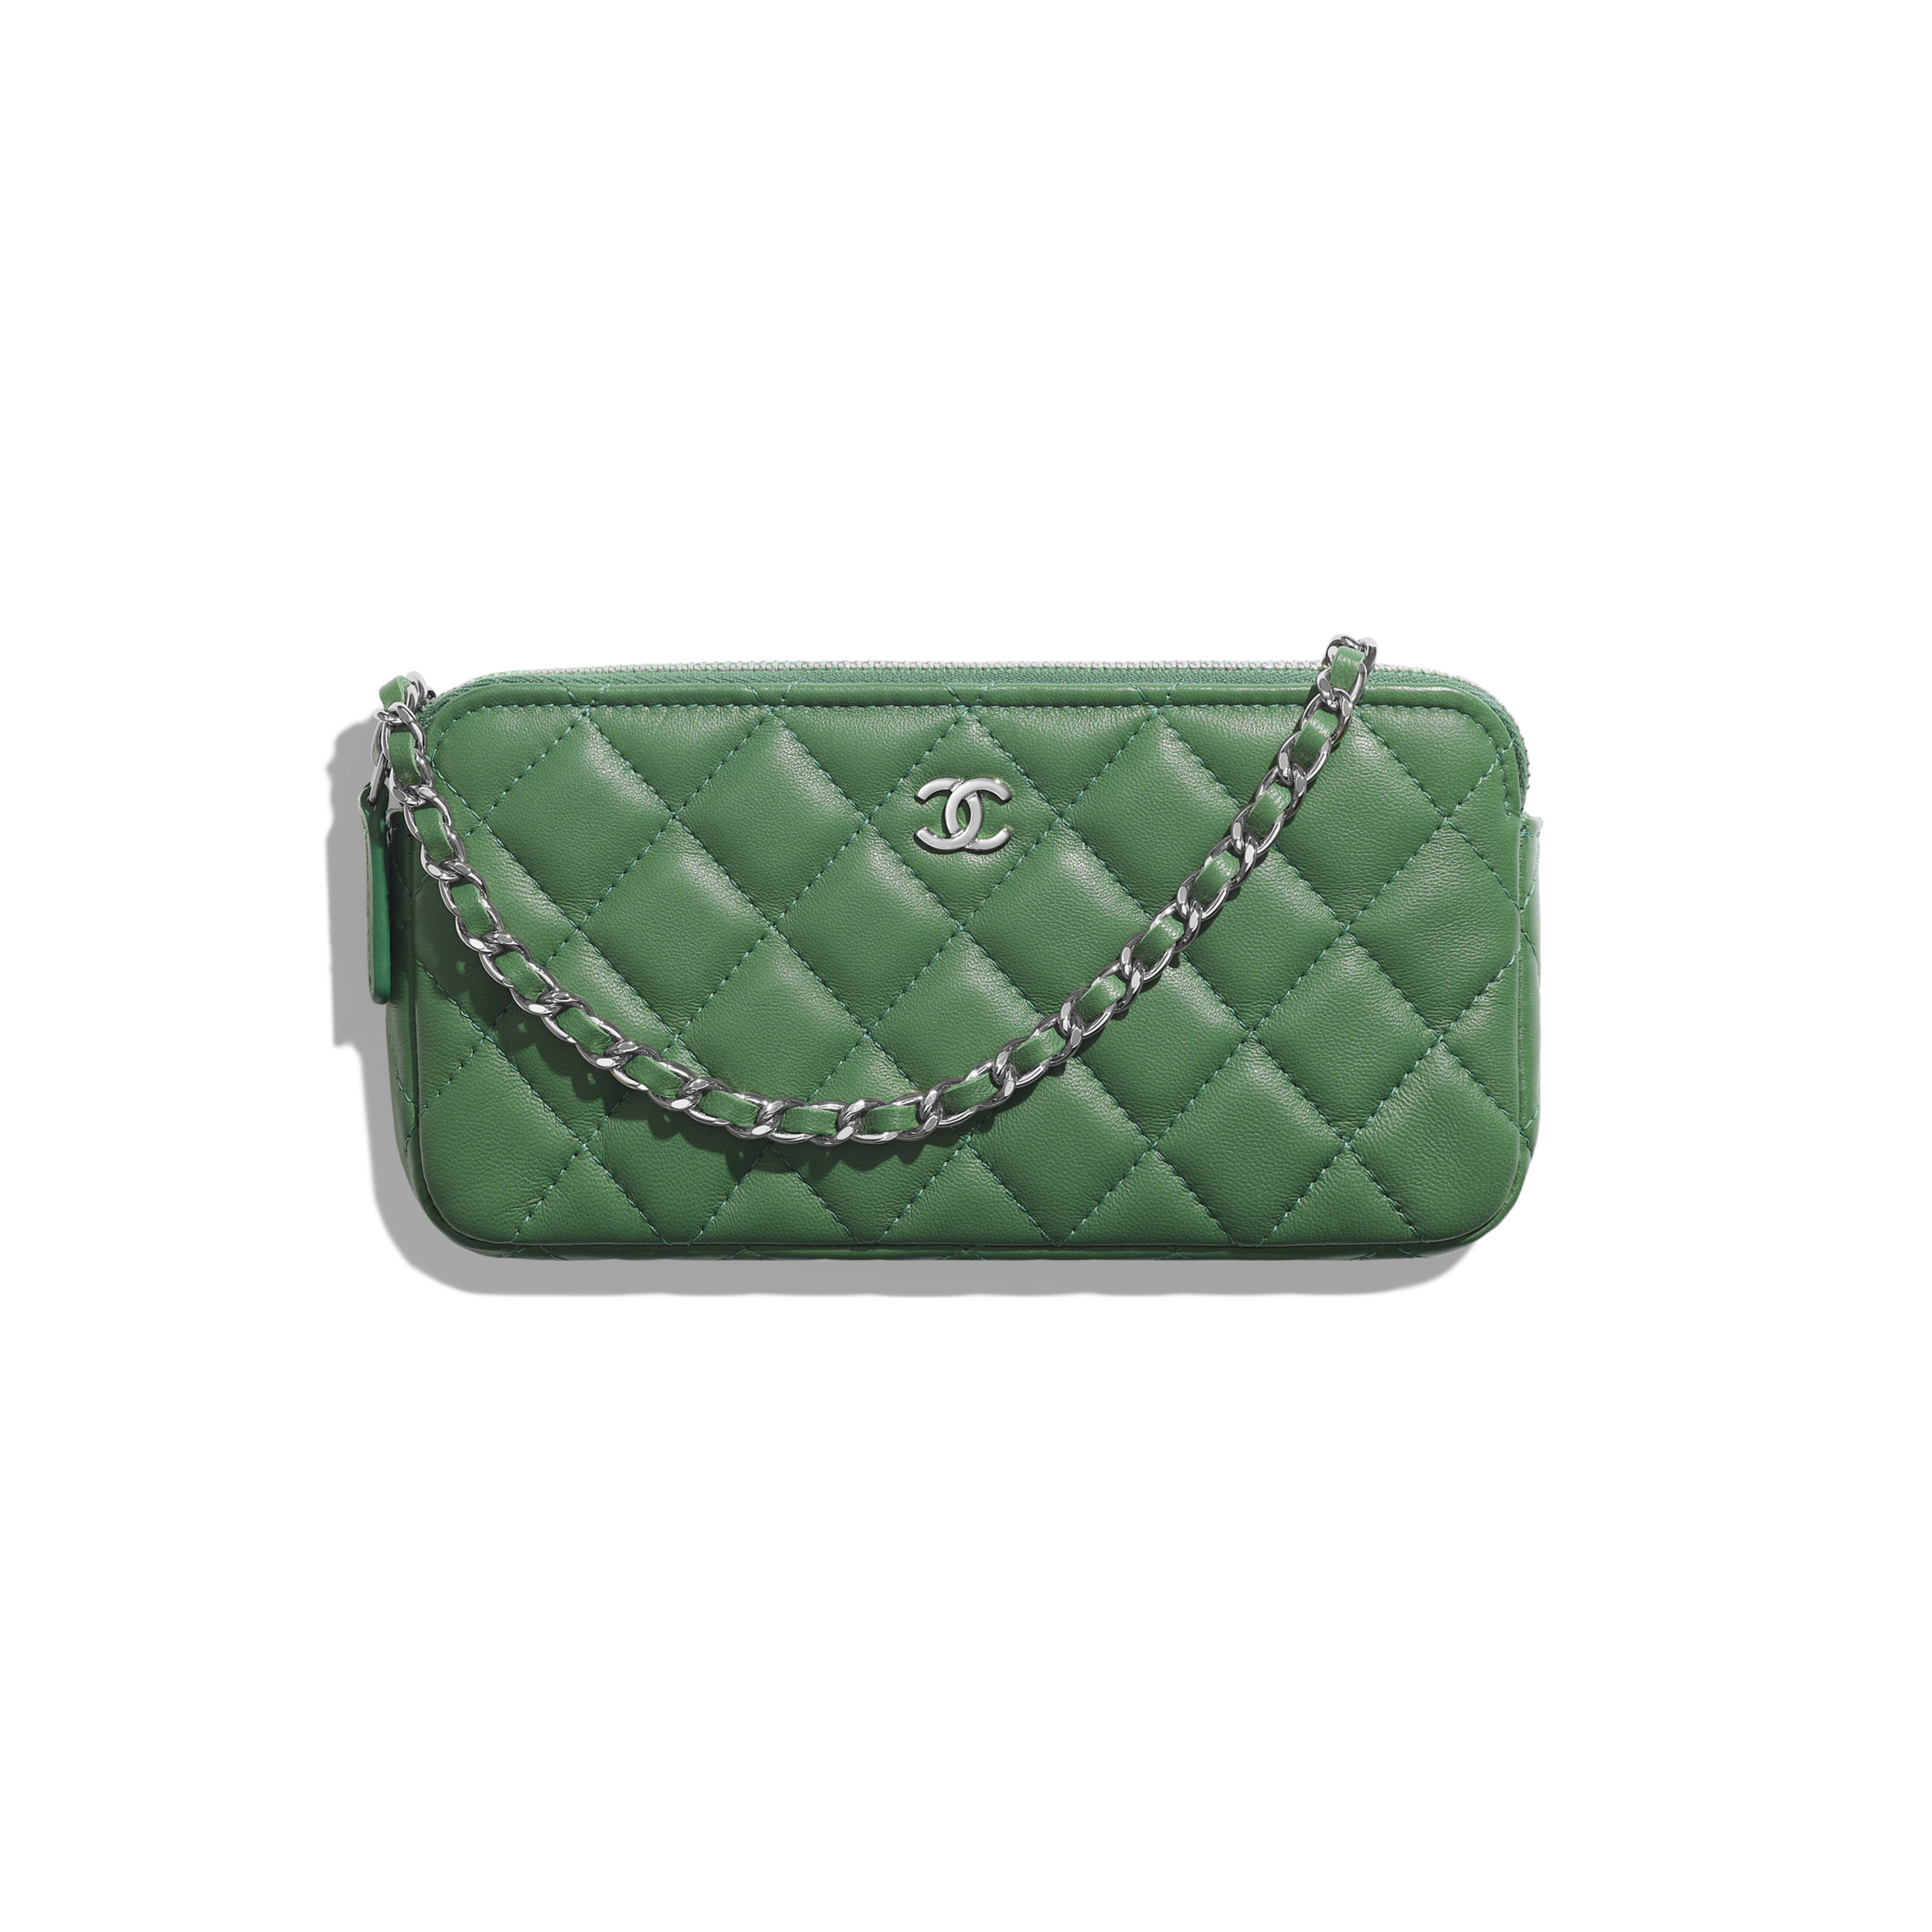 Classic Clutch With Chain - Green - Lambskin - Default view - see full sized version